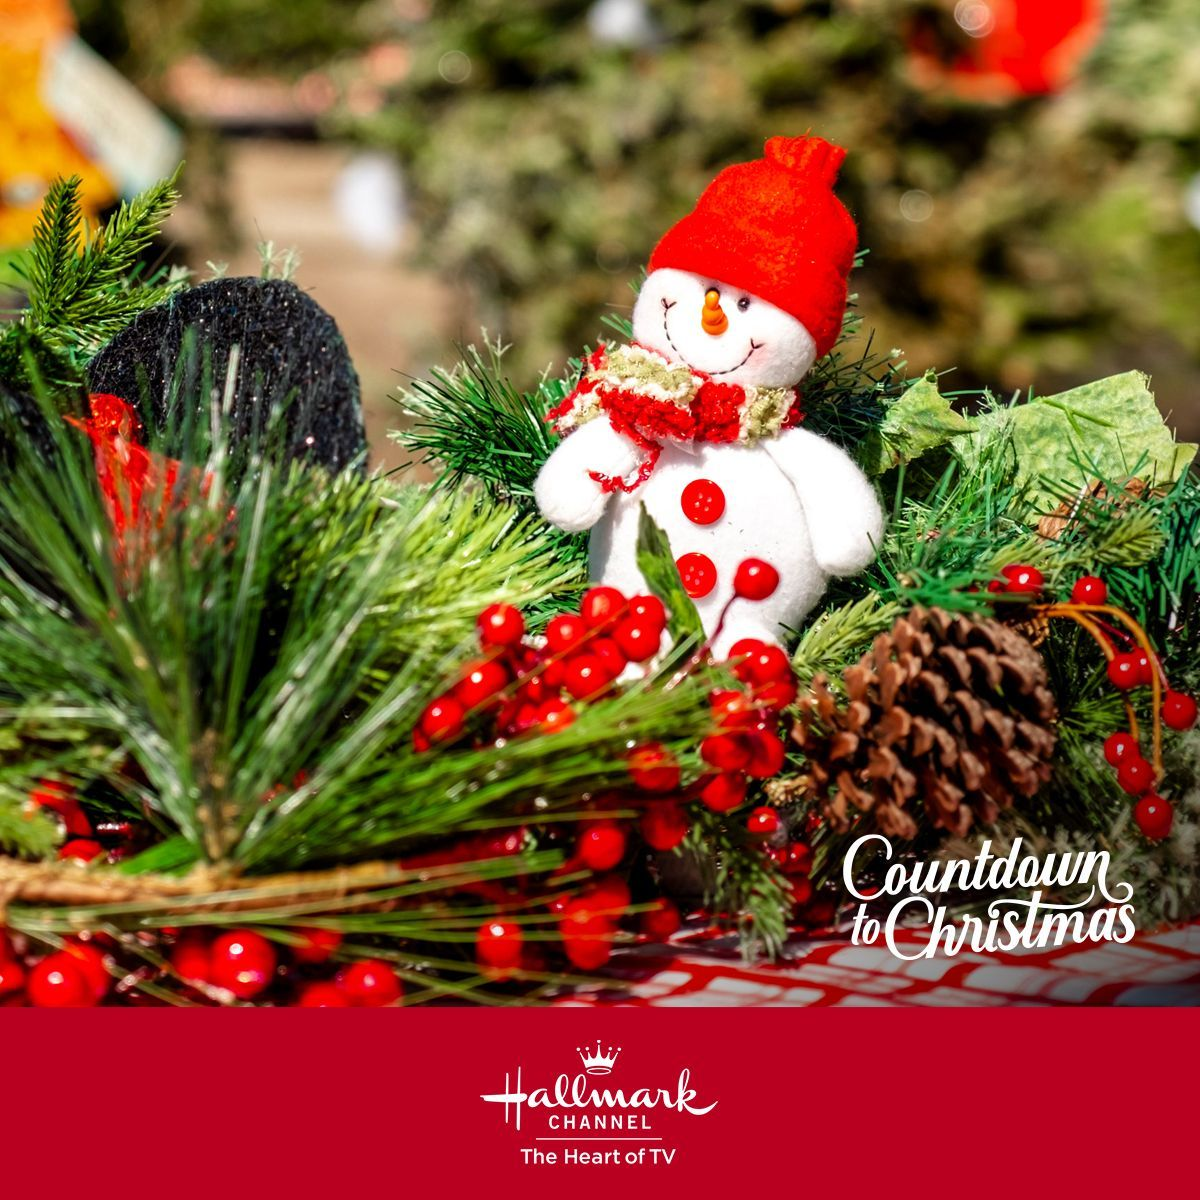 Every Friday Night Join Us For Countdown To Christmas Featuring All Your Favorite Hallmark Ch In 2020 Christmas Countdown Christmas Hallmark Channel Christmas Movies